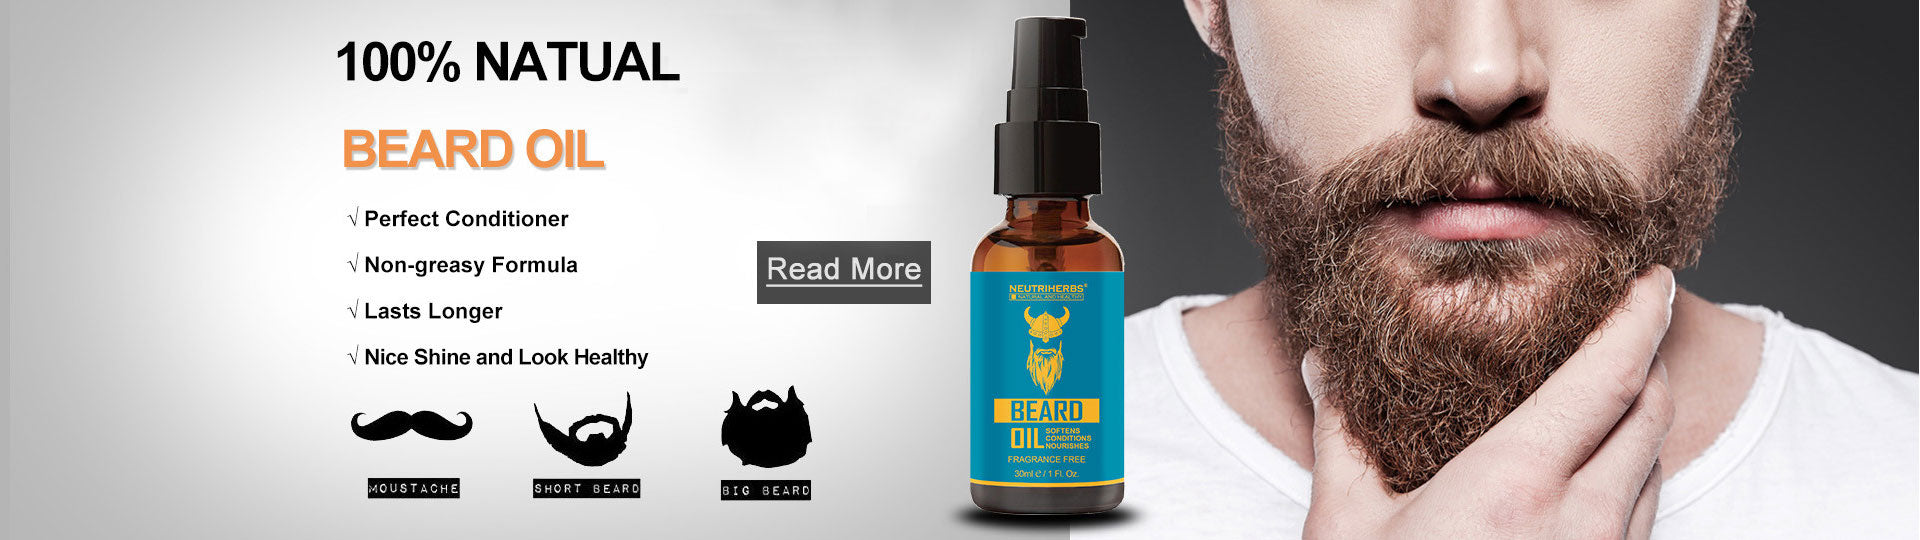 beard products-beard care-beard grooming